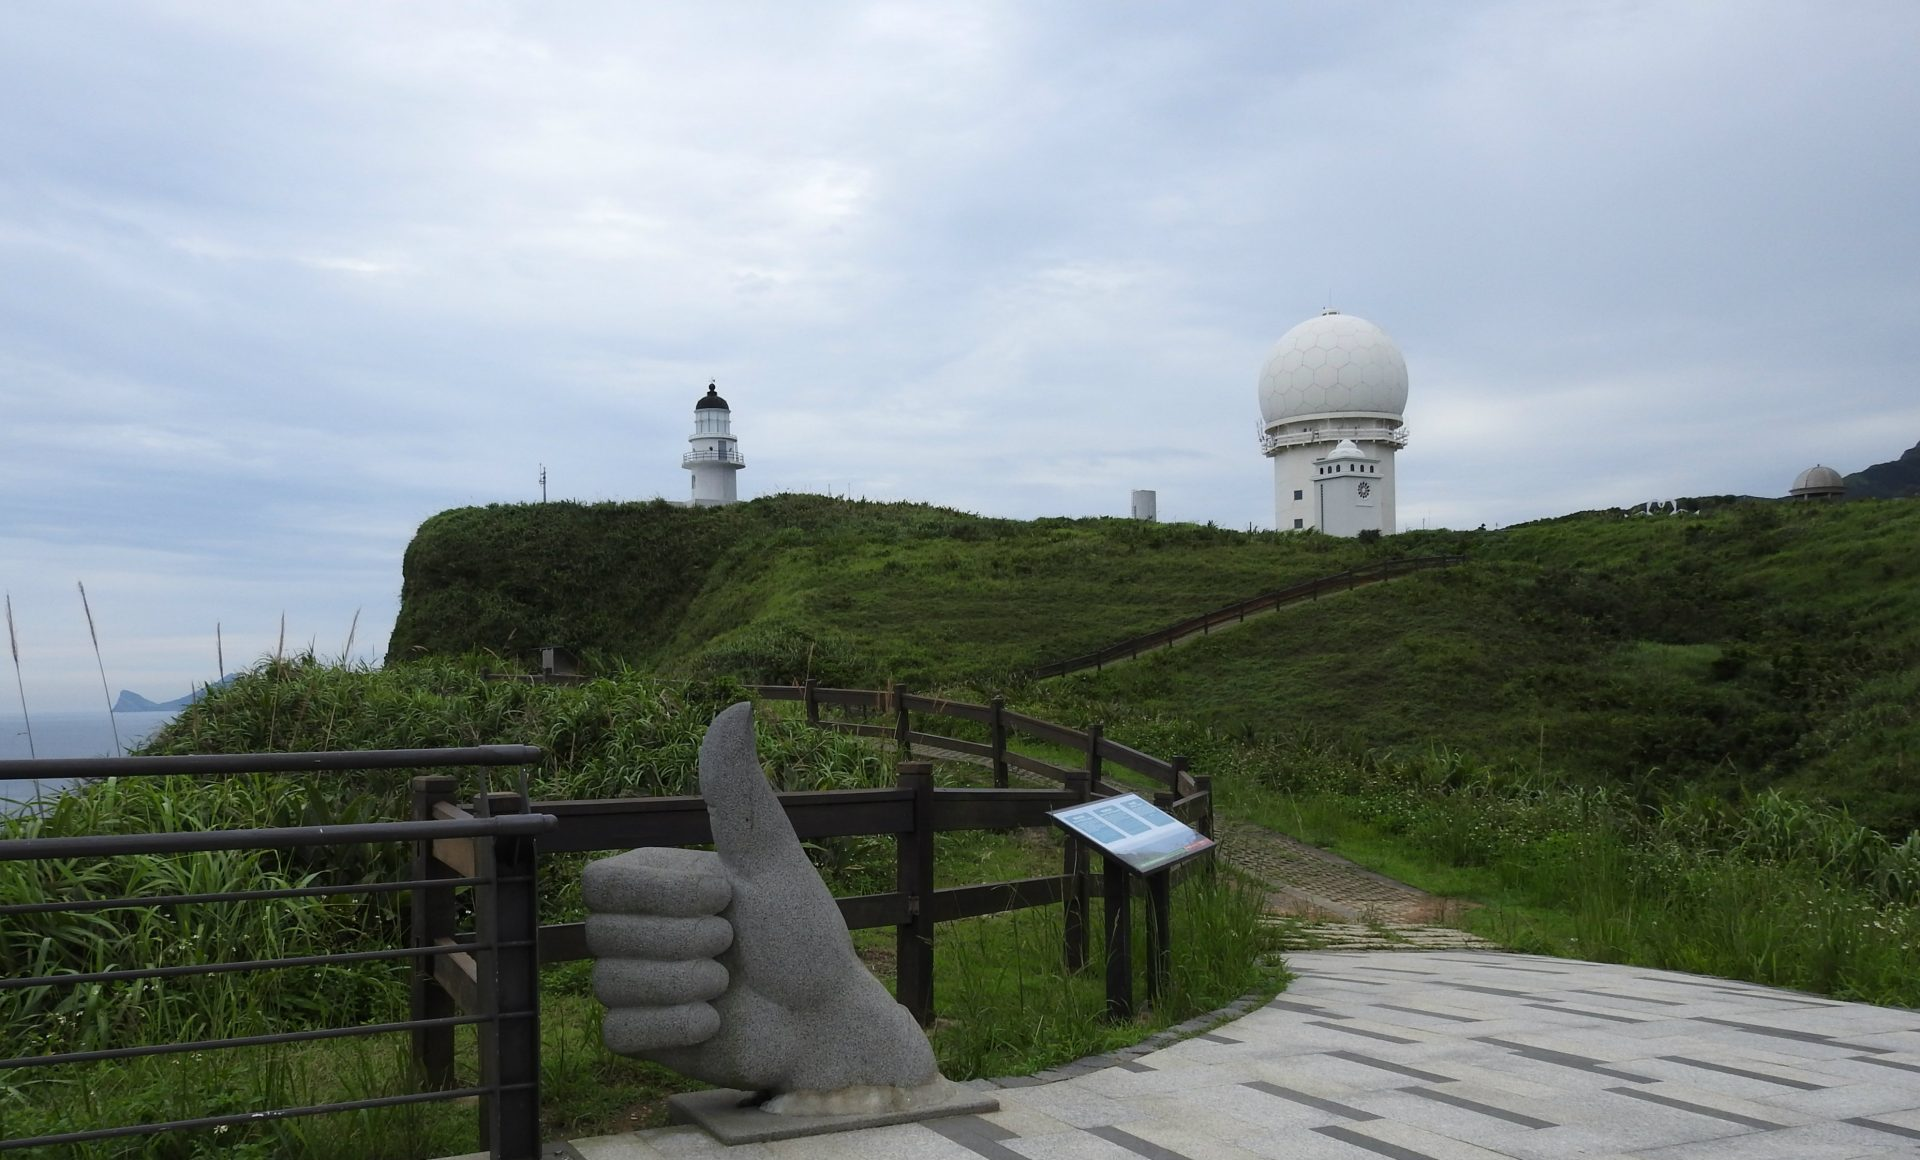 Situated on the northeastern tip of Taiwan, Sandiao Cape Lighthouse (三貂角燈塔) is an ideal place to take in the picturesque scenery of Taiwan's northeastern coastline. (Image: Billy Shyu/ Vision Times)